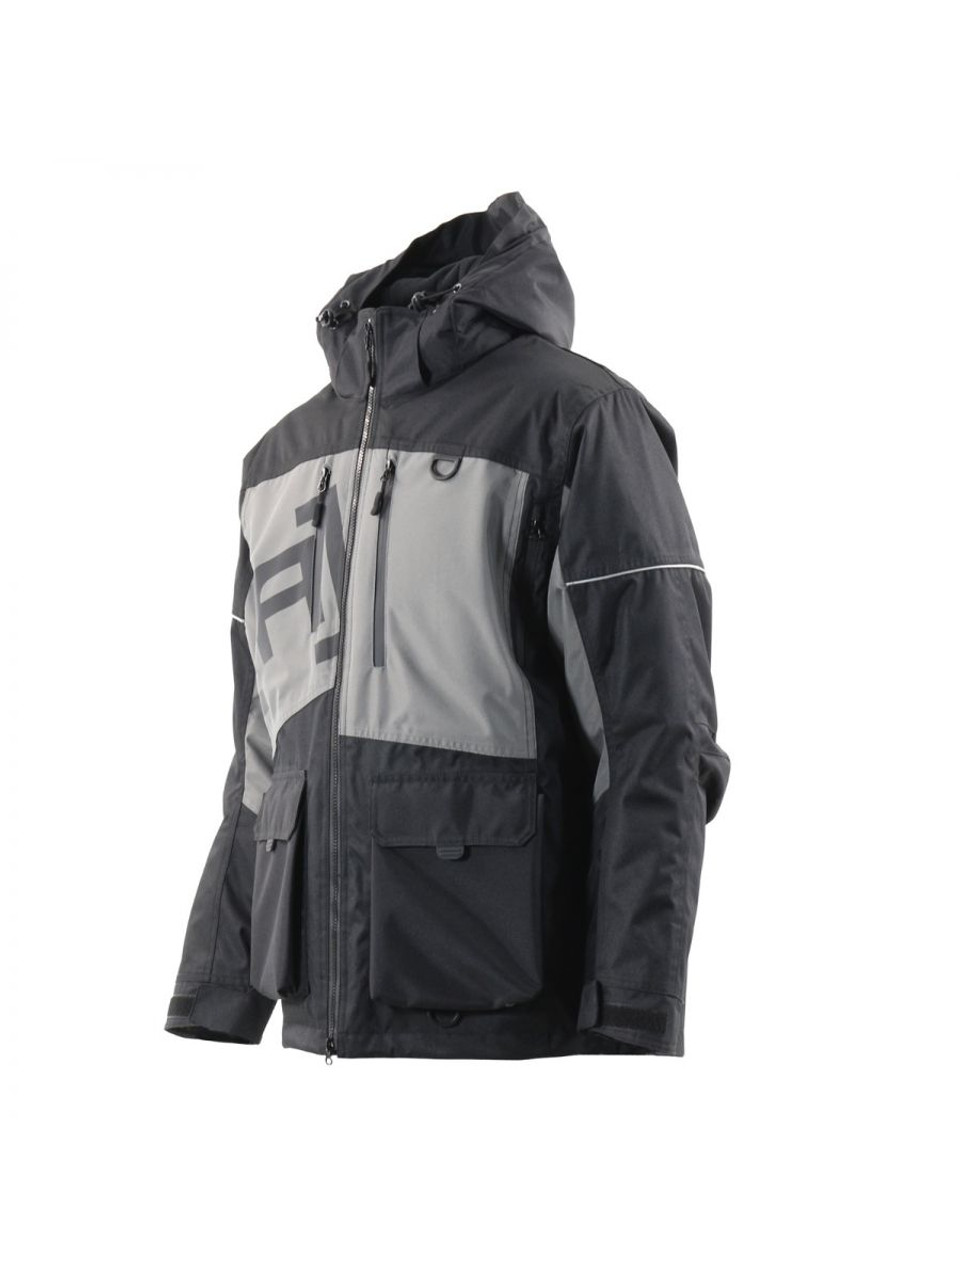 Clam Outdoors Men's IceArmor Defender Ice Fishing Parka